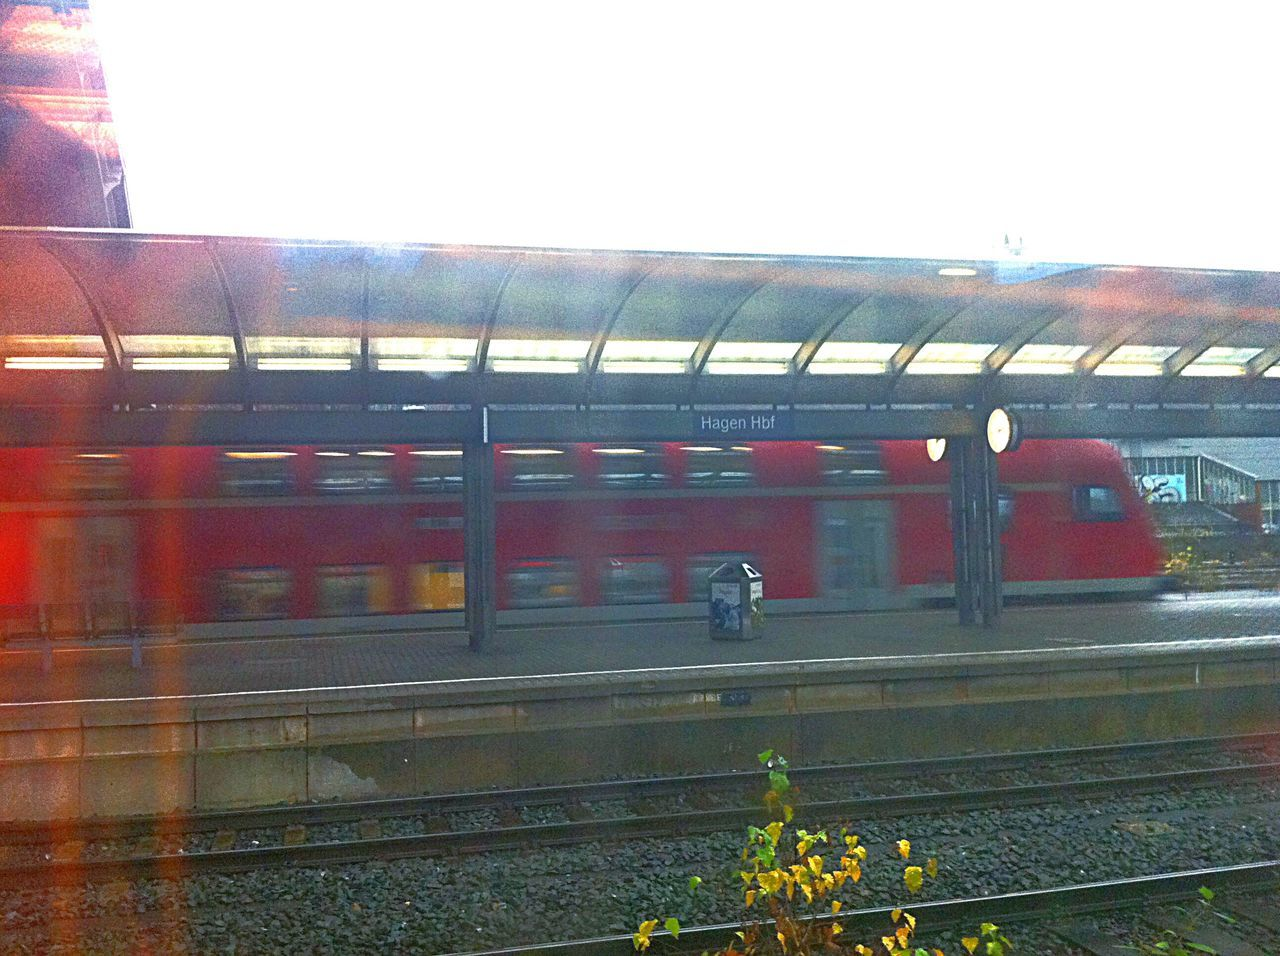 Eurail On The Train Railway Railways_of_our_world From My Window Train Travel By Puk✈️ Hello World Eye Em Around The World Enjoying The View From My Point Of View